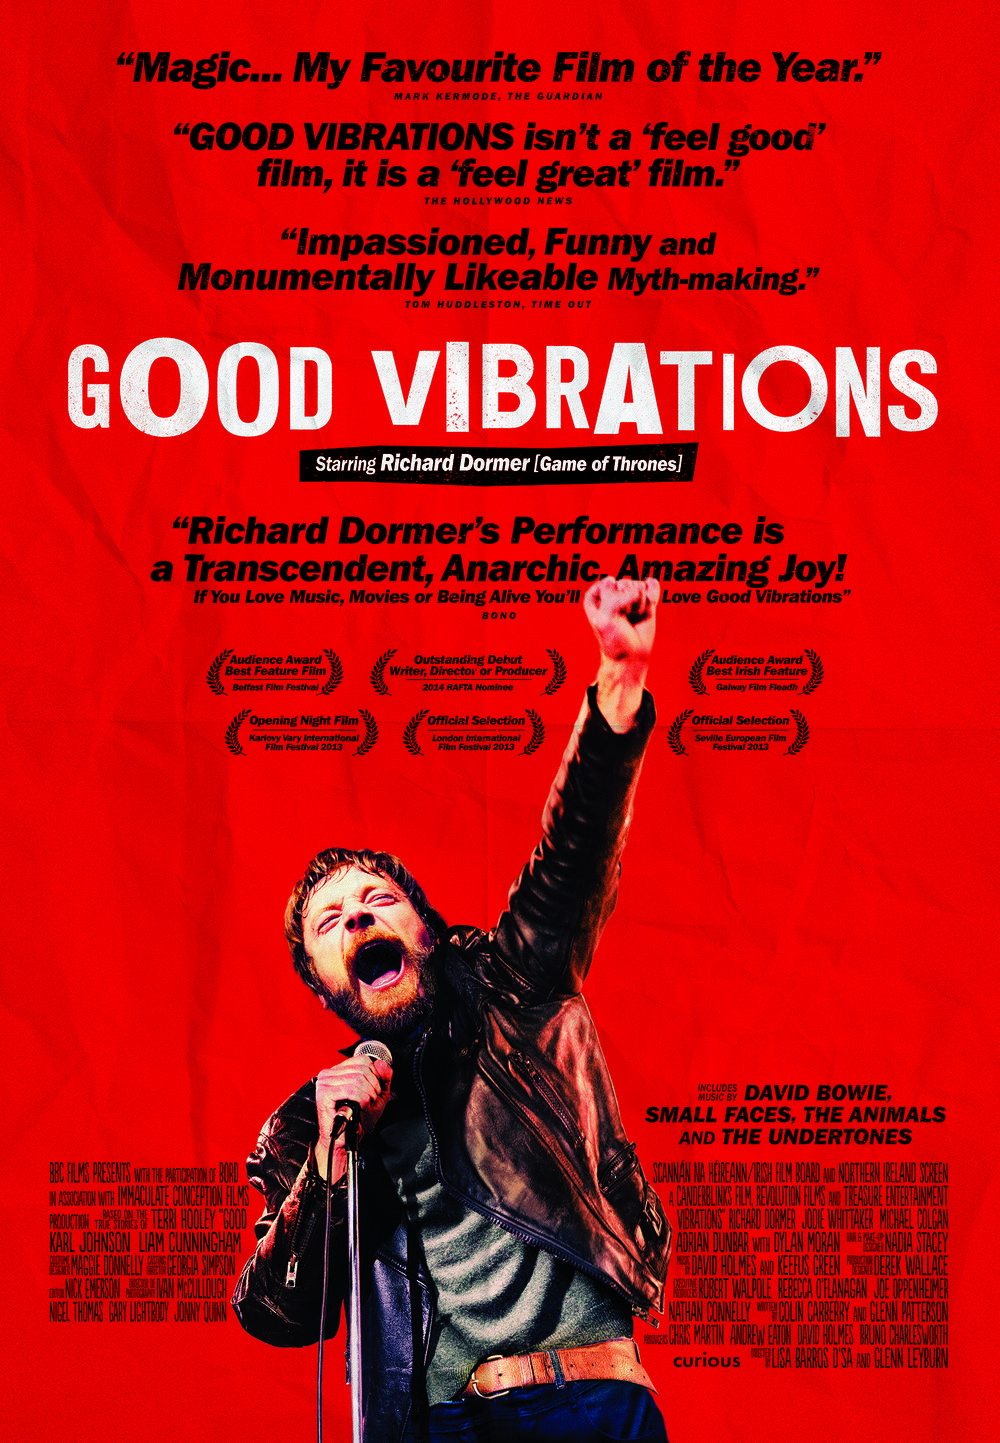 GOOD VIBRATIONS - Set in Belfast at the height of the Troubles, Good Vibrations – as its title might suggest – is an upbeat bio-pic of Terri Hooly, founder of the eponymous record store and label that signed bands such as The Undertones, known for their immortal punk hit Teenage Kicks. Played by Richard Dormer, Hooly is a force of nature, determined that his hometown be known for more than just bombs and bullets.